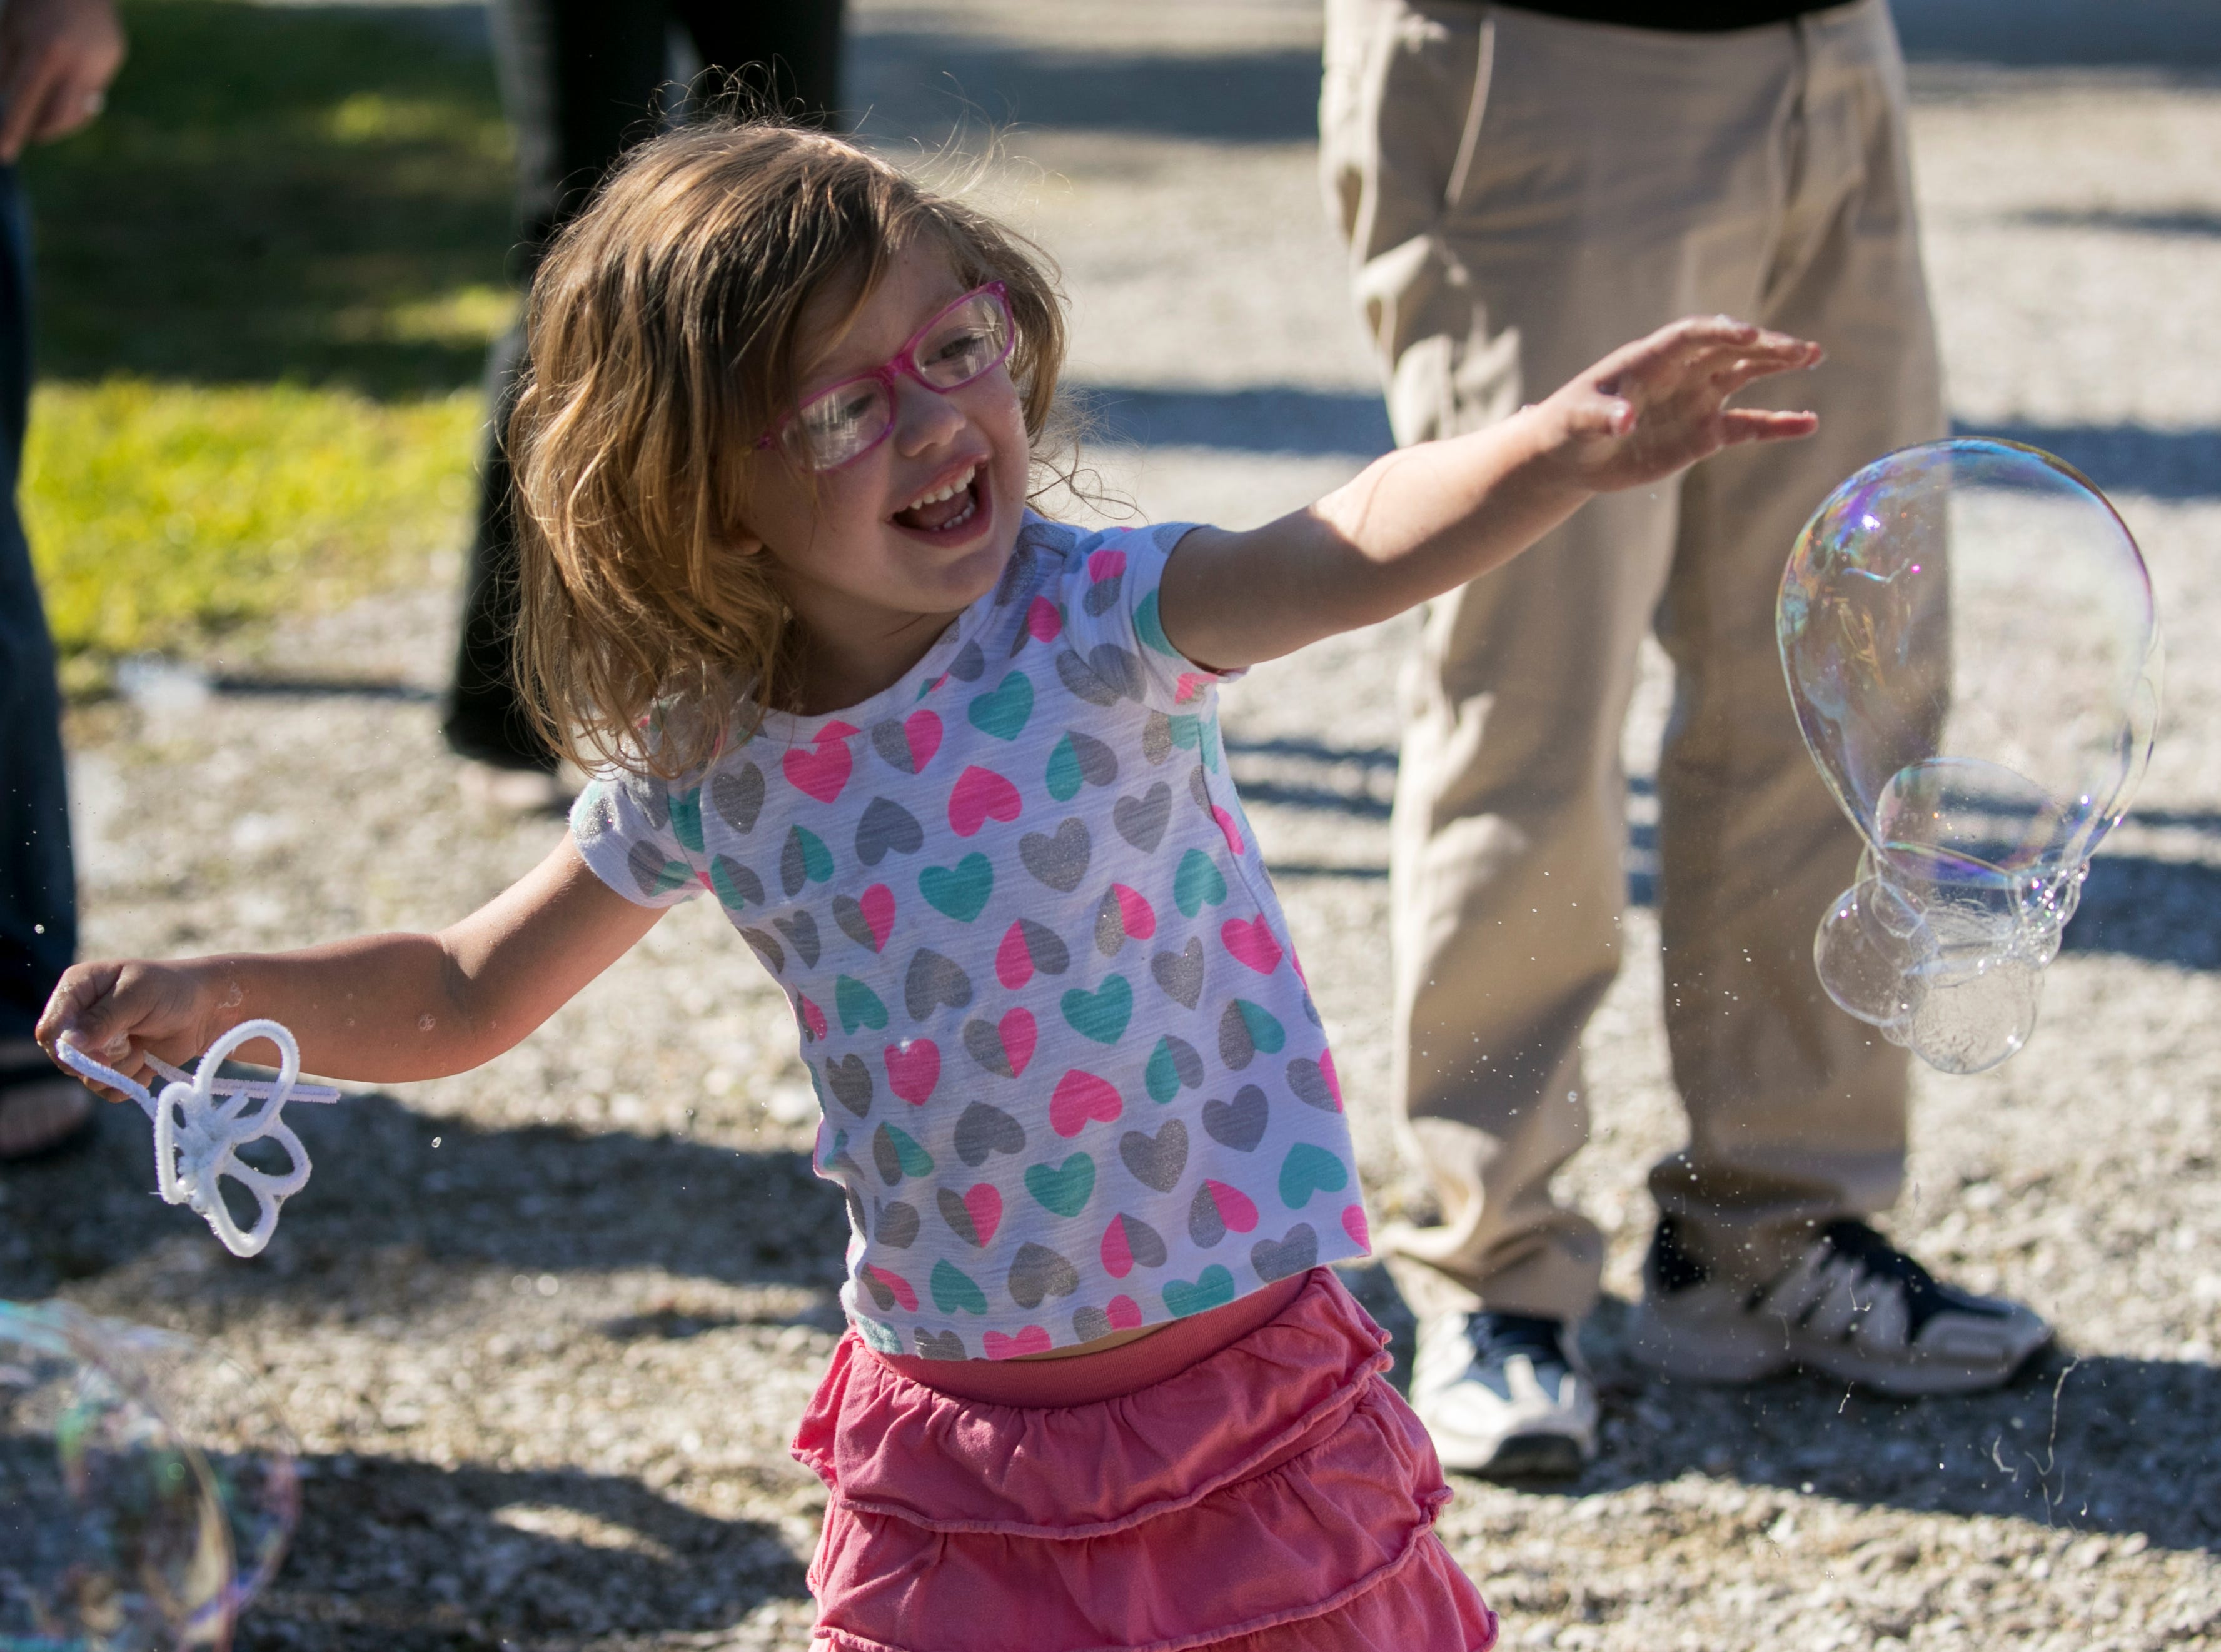 Devan Kuntz, 3, chases bubbles during the monthly Emerging Inventors program on Thursday, January 17, 2019, at the Edison & Ford Winter Estates in Fort Myers. This month's program was called Bouncing Bubbles. The next program, which is for children 5 and younger, is February 21 at 9:30 am, and is called is LEGO Art and Engineering.